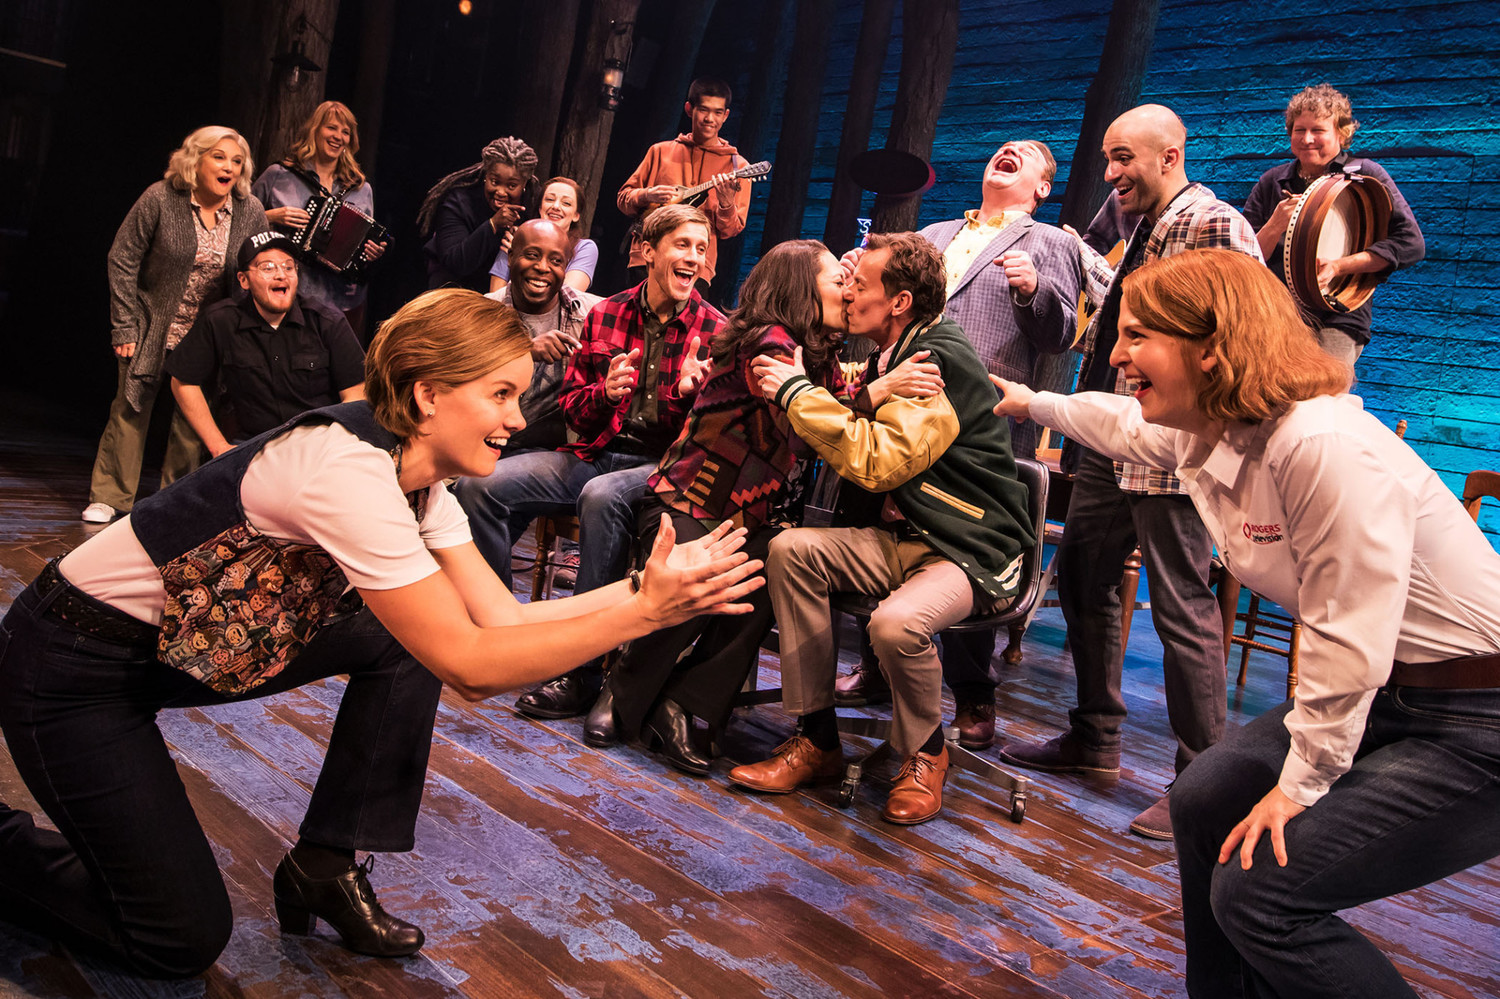 BWW Review: COME FROM AWAY Captivates Edmonton